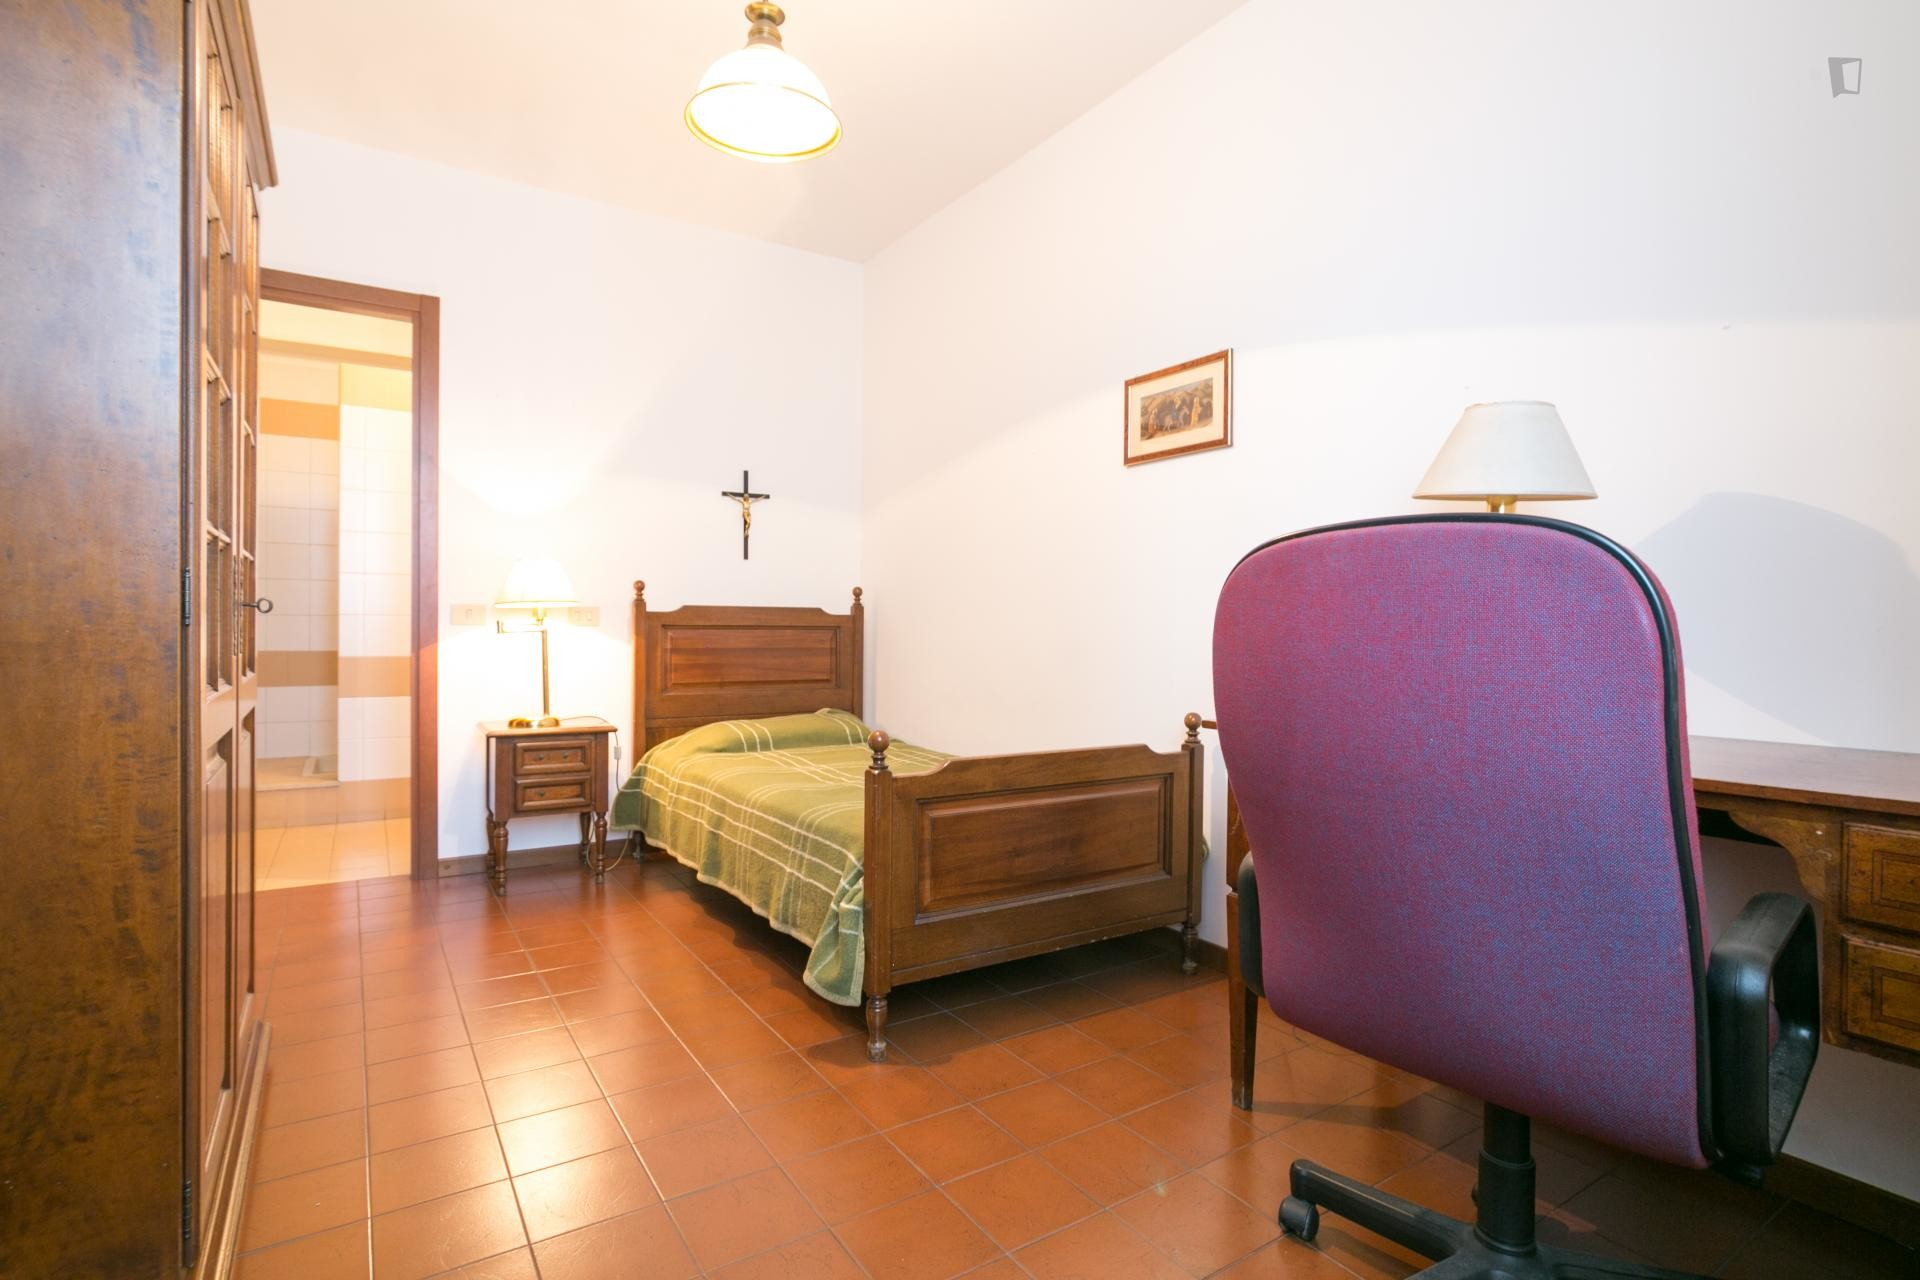 Ensuite rooms in a male-only, International Villa in Sesto San G